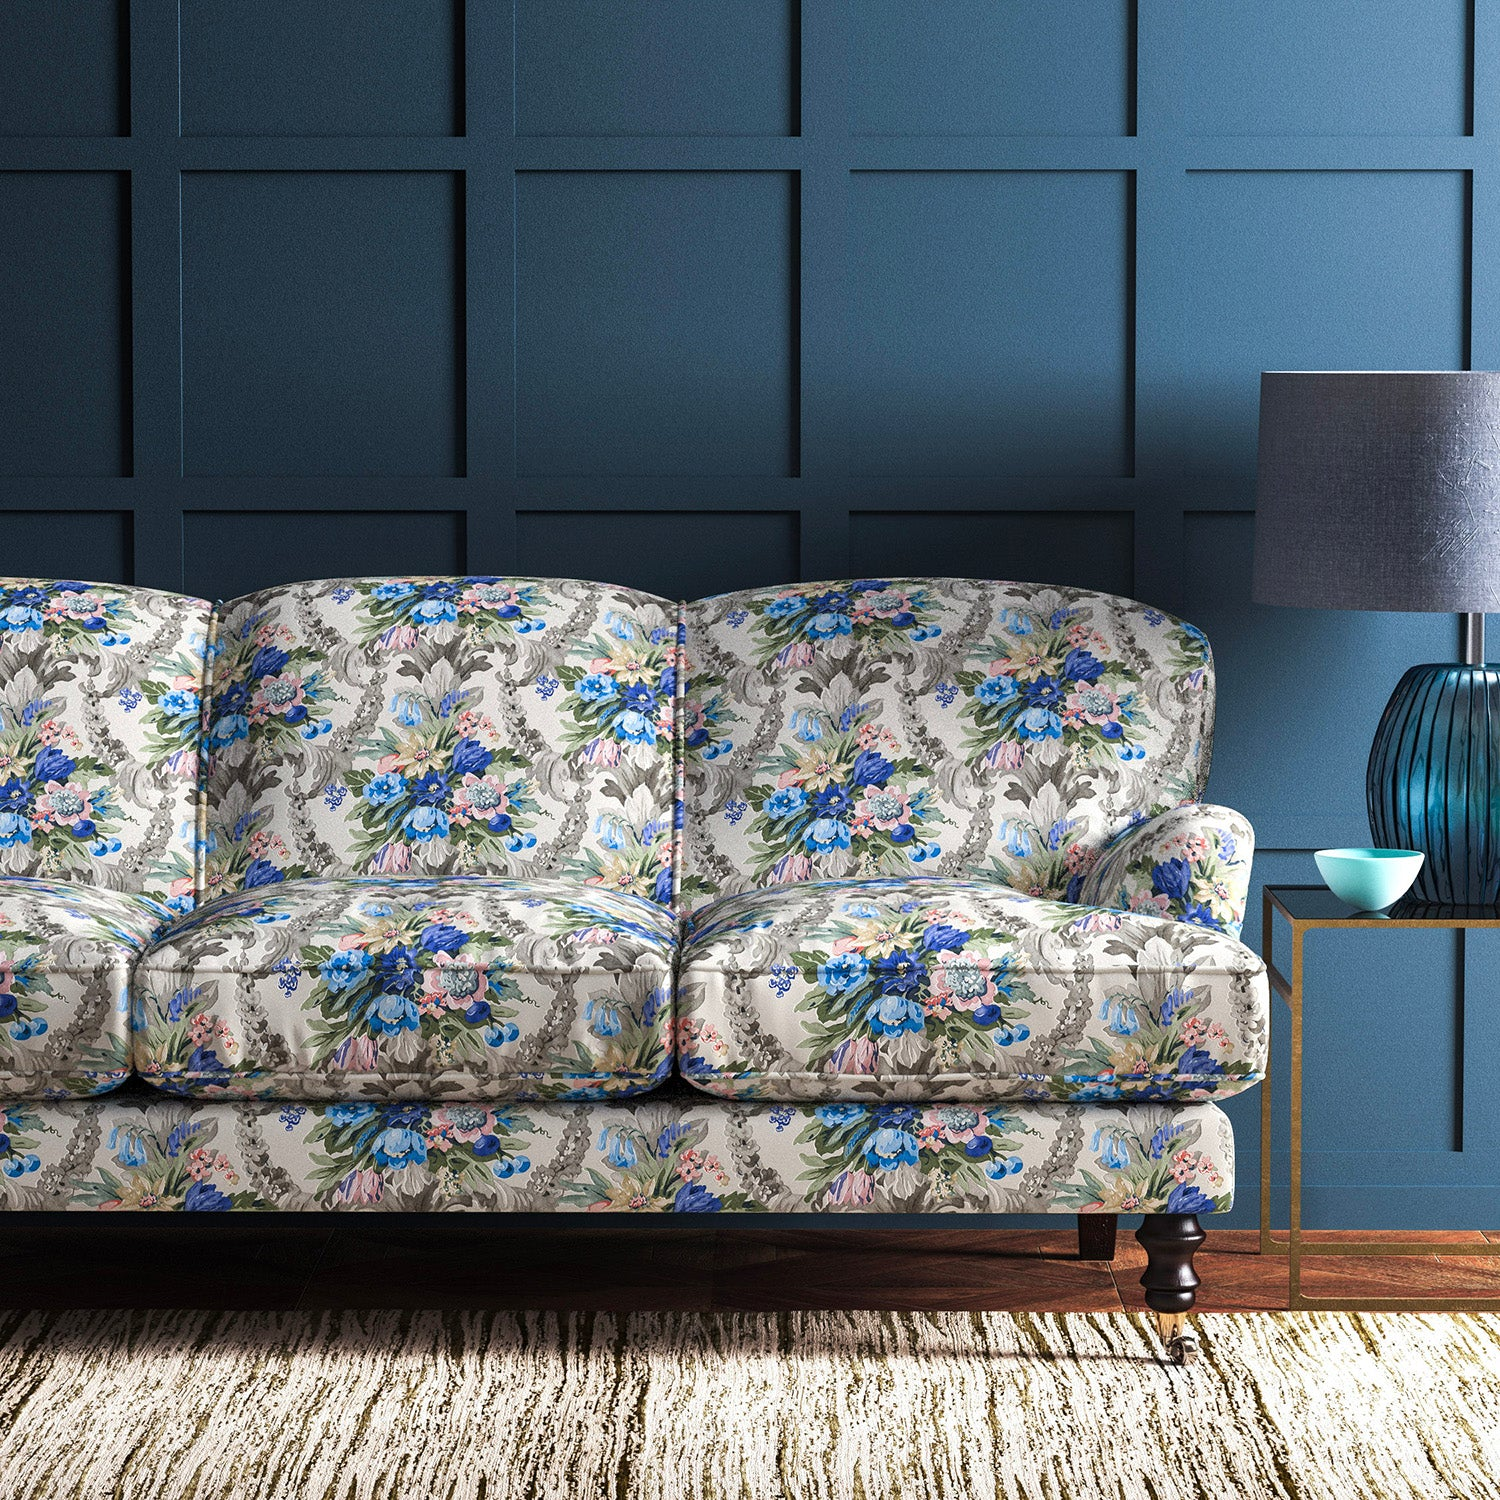 Sofa upholstered in a velvet upholstery fabric with stain resistant finish and vibrant colourful flower bouquet